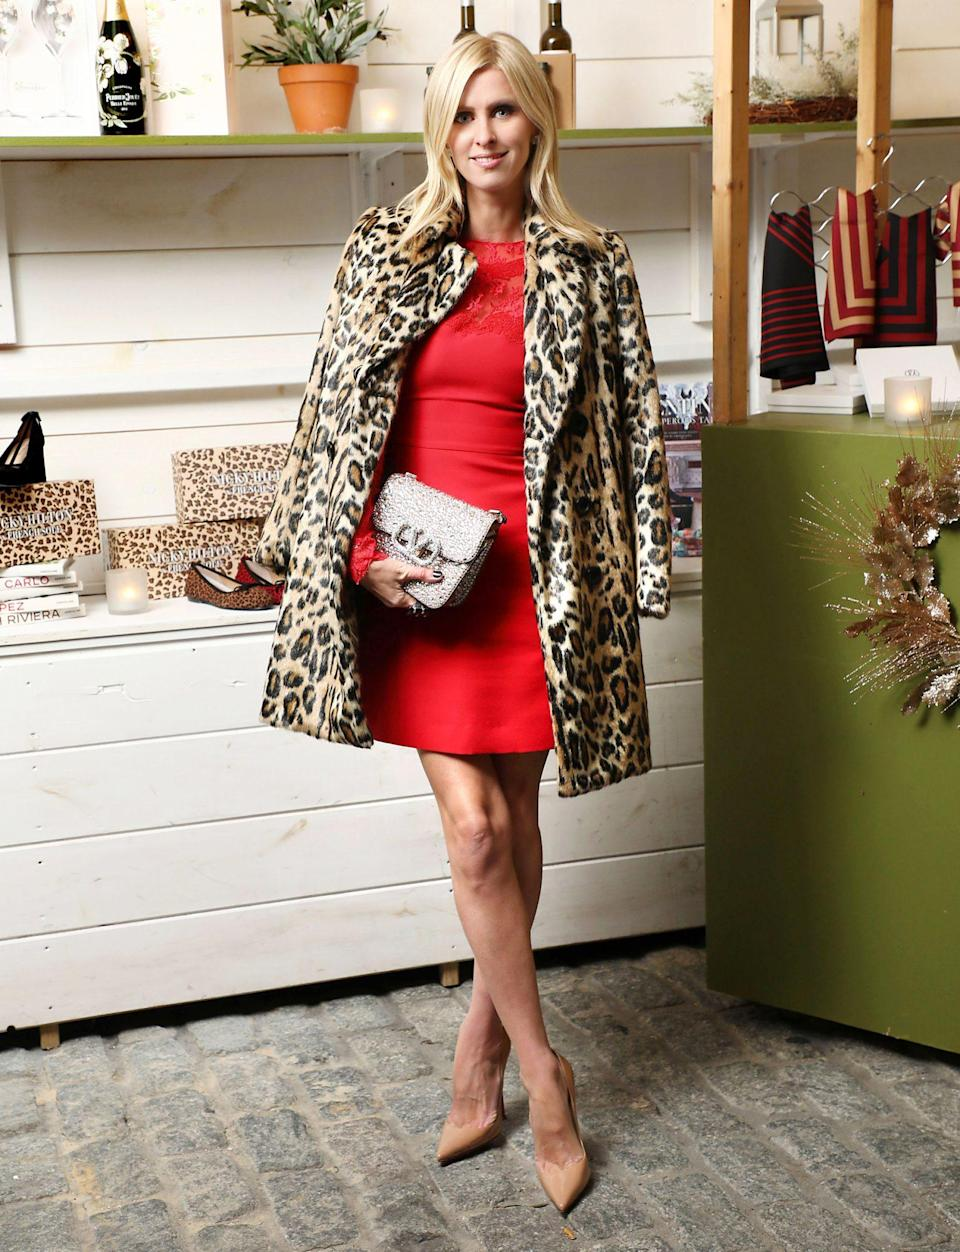 <p>Nicky Hilton Rothschild attends the launch of Le Marche at Fig & Olive, a holiday gift market curated by Olivia Palermo, on Tuesday in N.Y.C. </p>